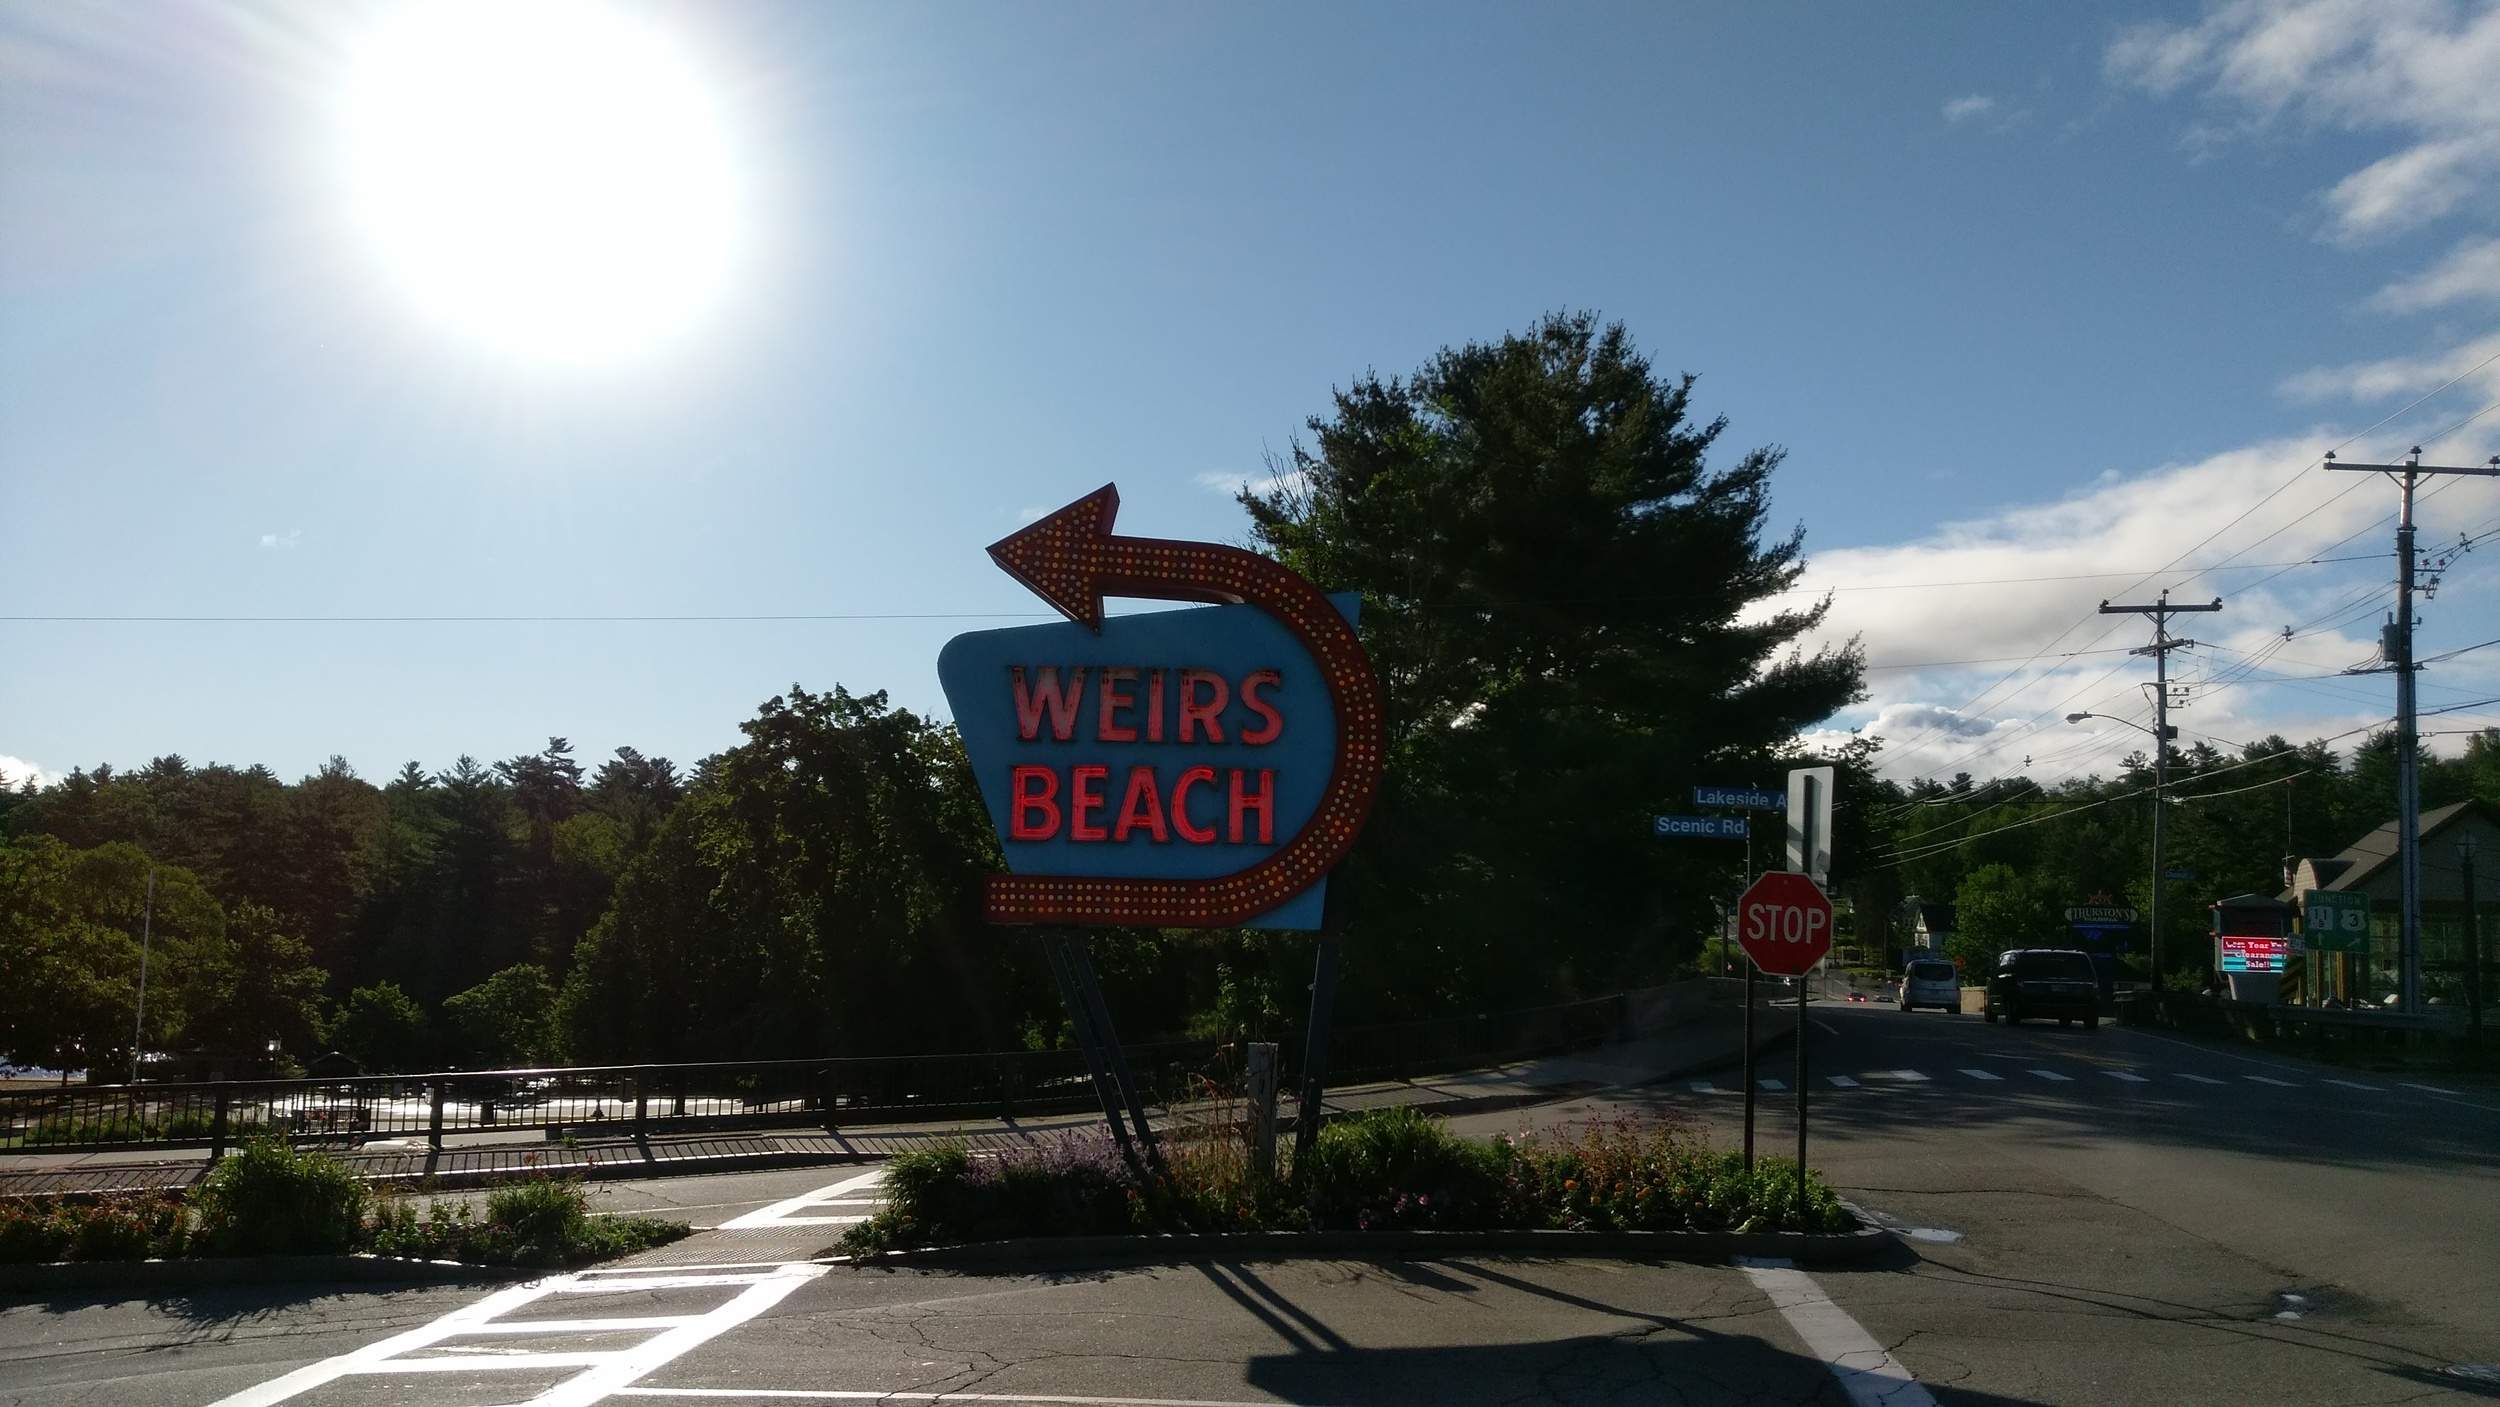 The famous Weirs Beach sign